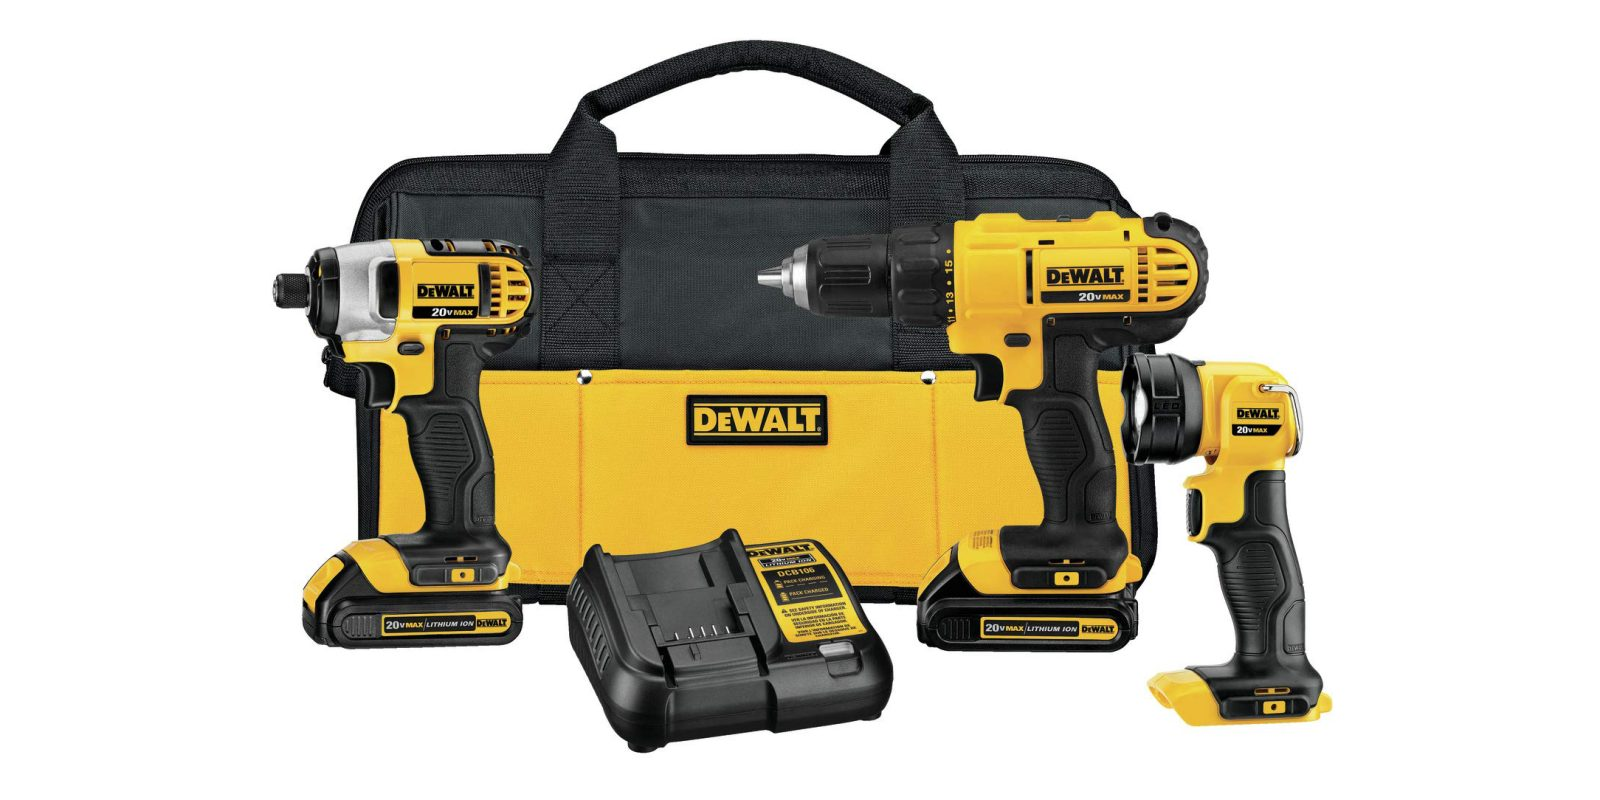 Amazon's Gold Box has DEWALT combo tool kits and more from